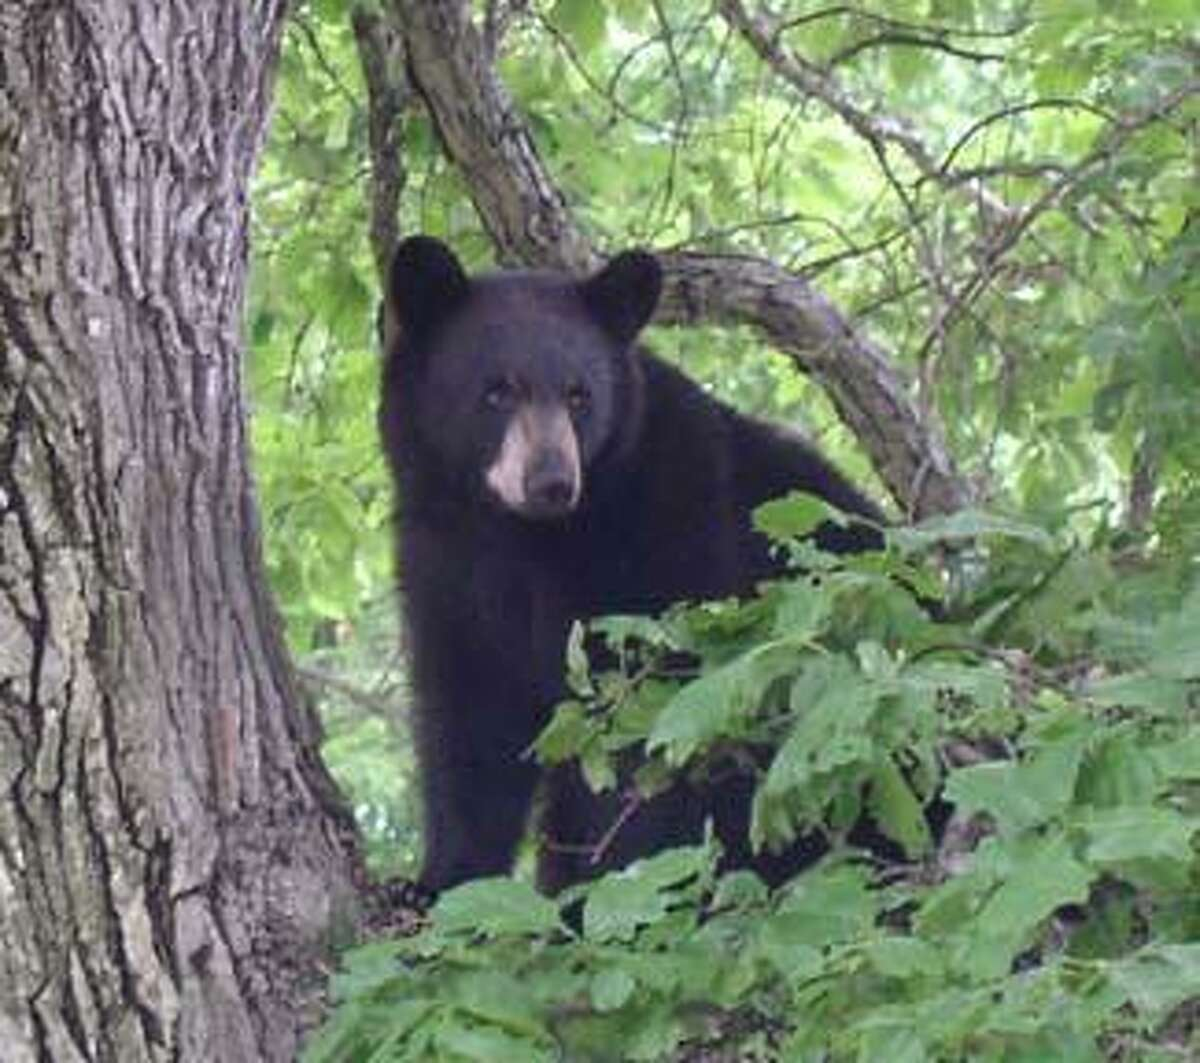 The state continues to get reports of black bear sightings. On Sunday, Aug. 27, the Easton Police Department reportedon its Facebook page that a bear had been seen in town. Photo courtesy of the Connecticut Department of Energy and Environmental Protection web site.